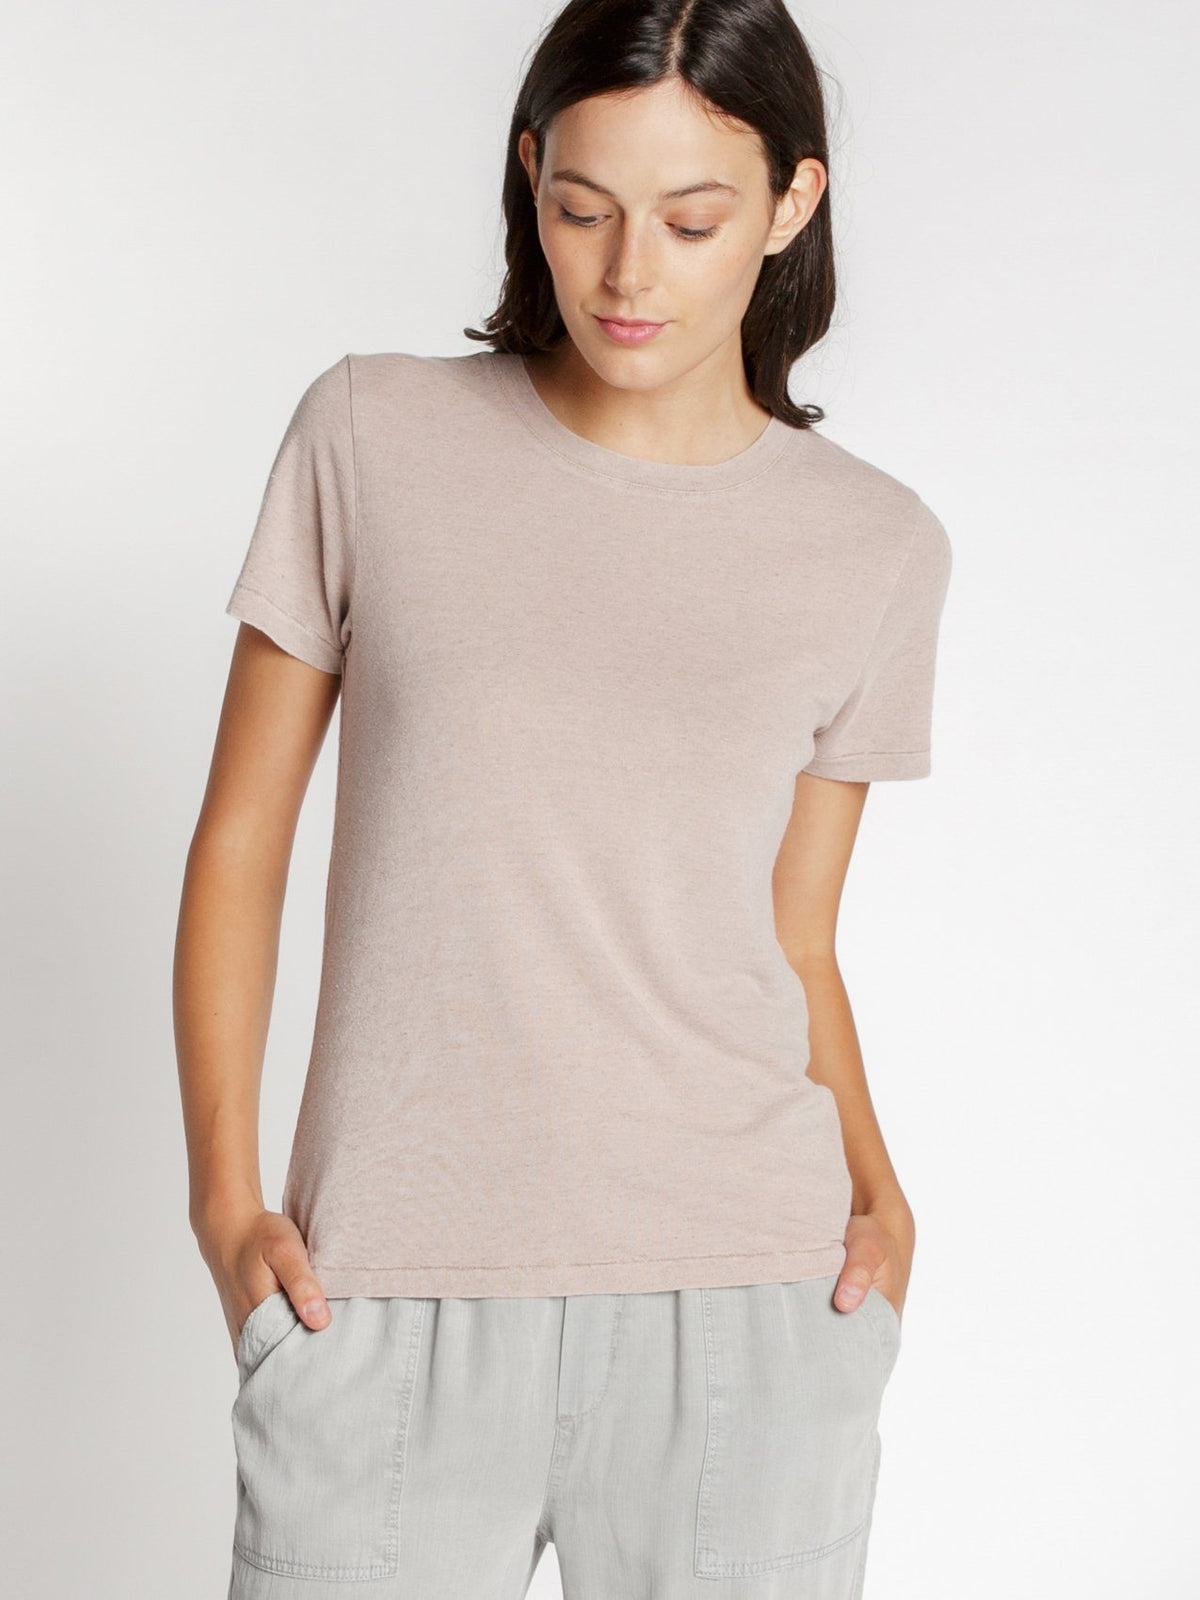 Alchemy Tee T-shirts Thread & Supply Blush S